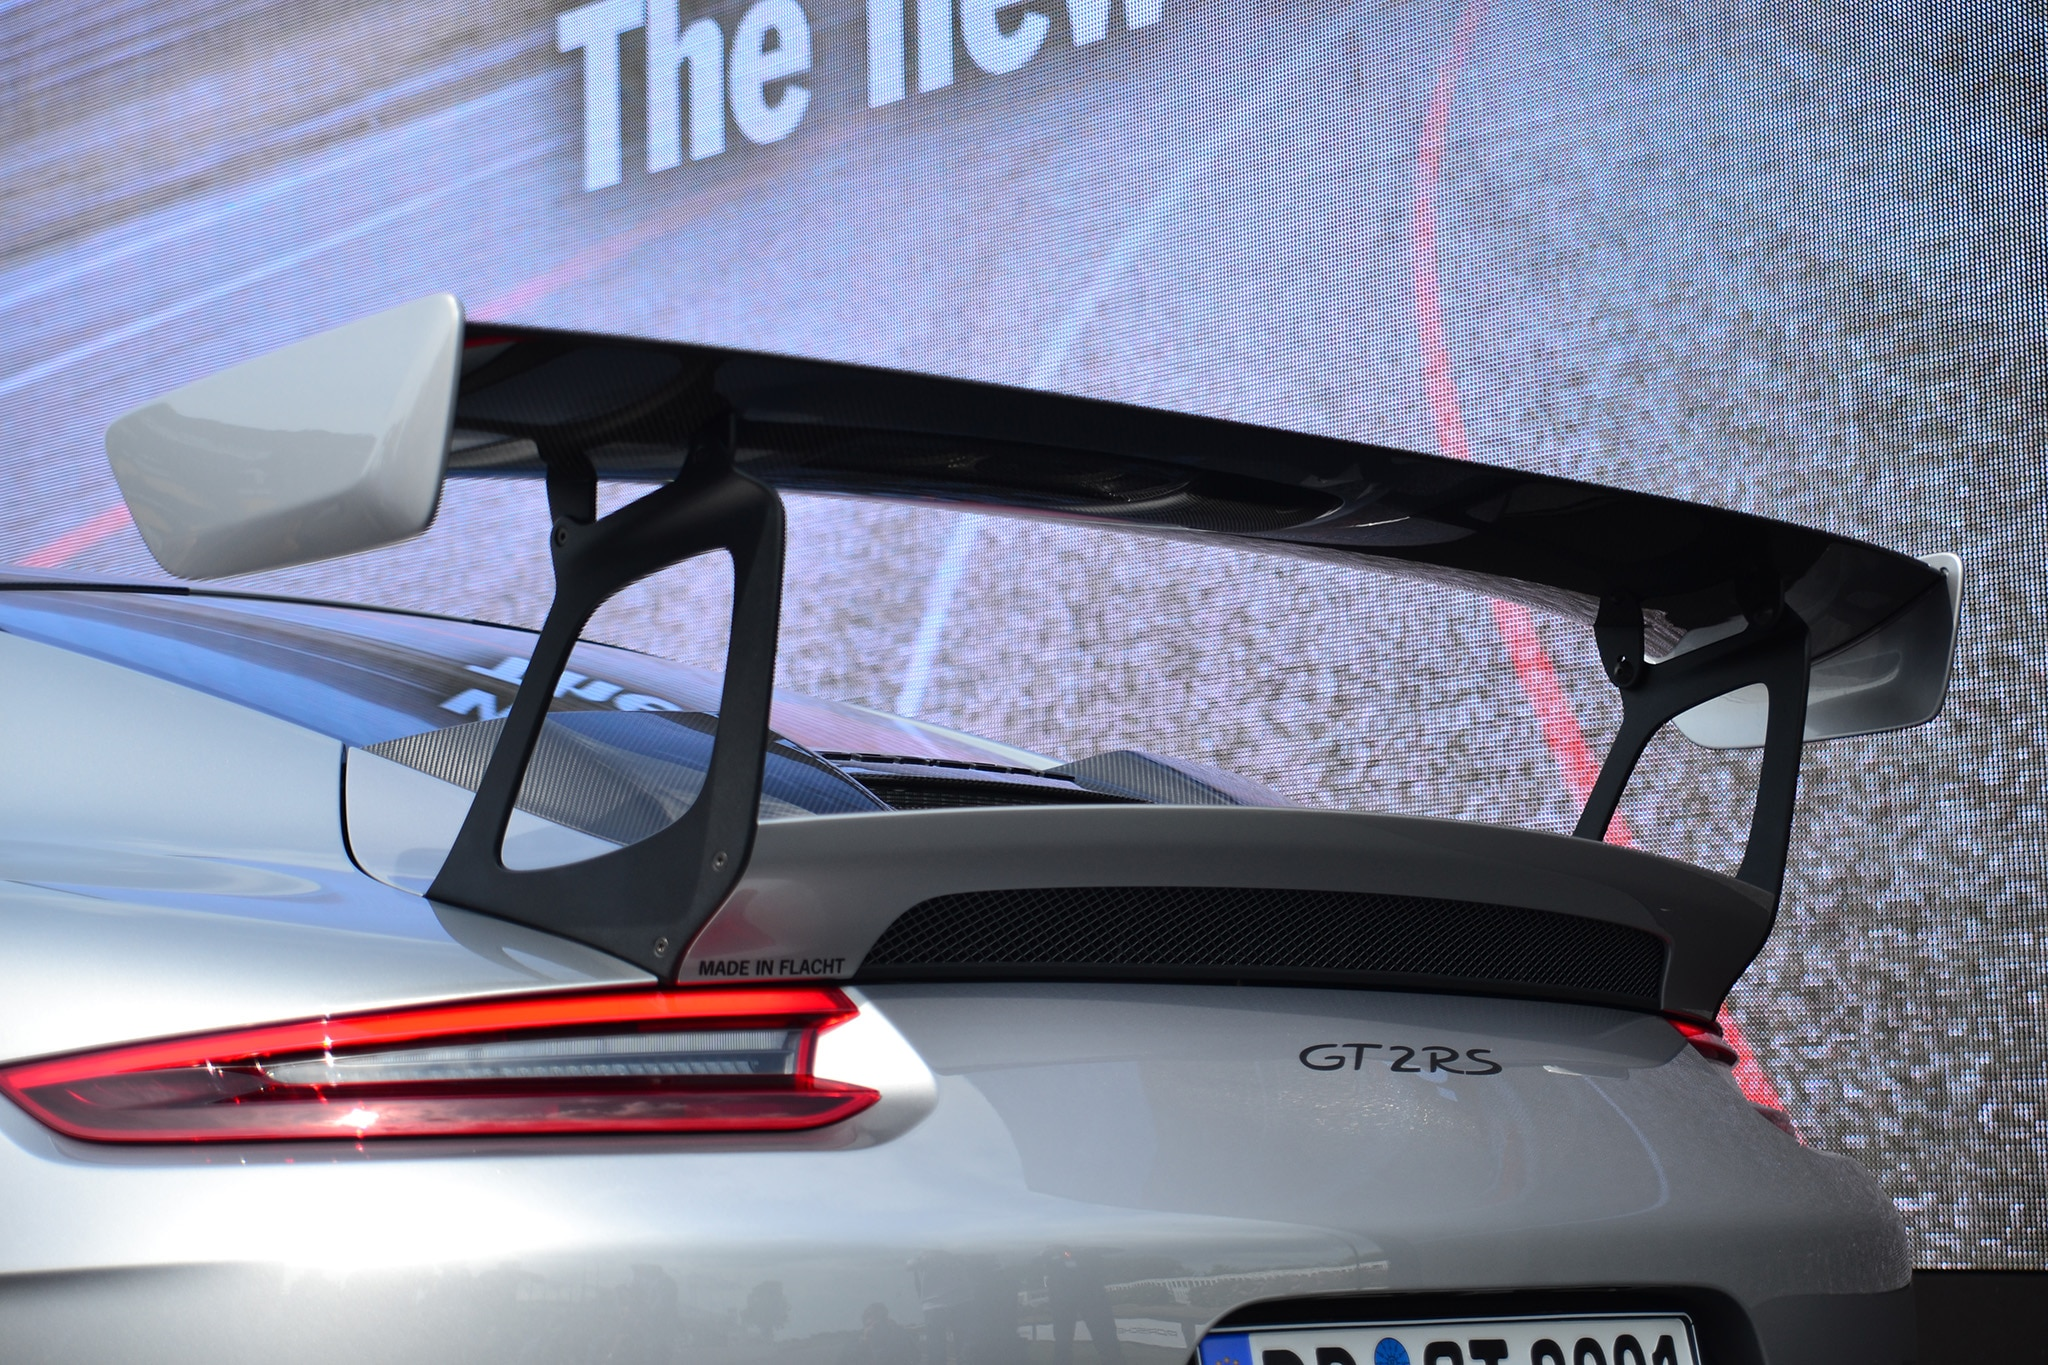 2018-Porsche-911-GT2-RS-Wing-Detail Interesting Porsche 911 Gt2 and Gt3 Cars Trend